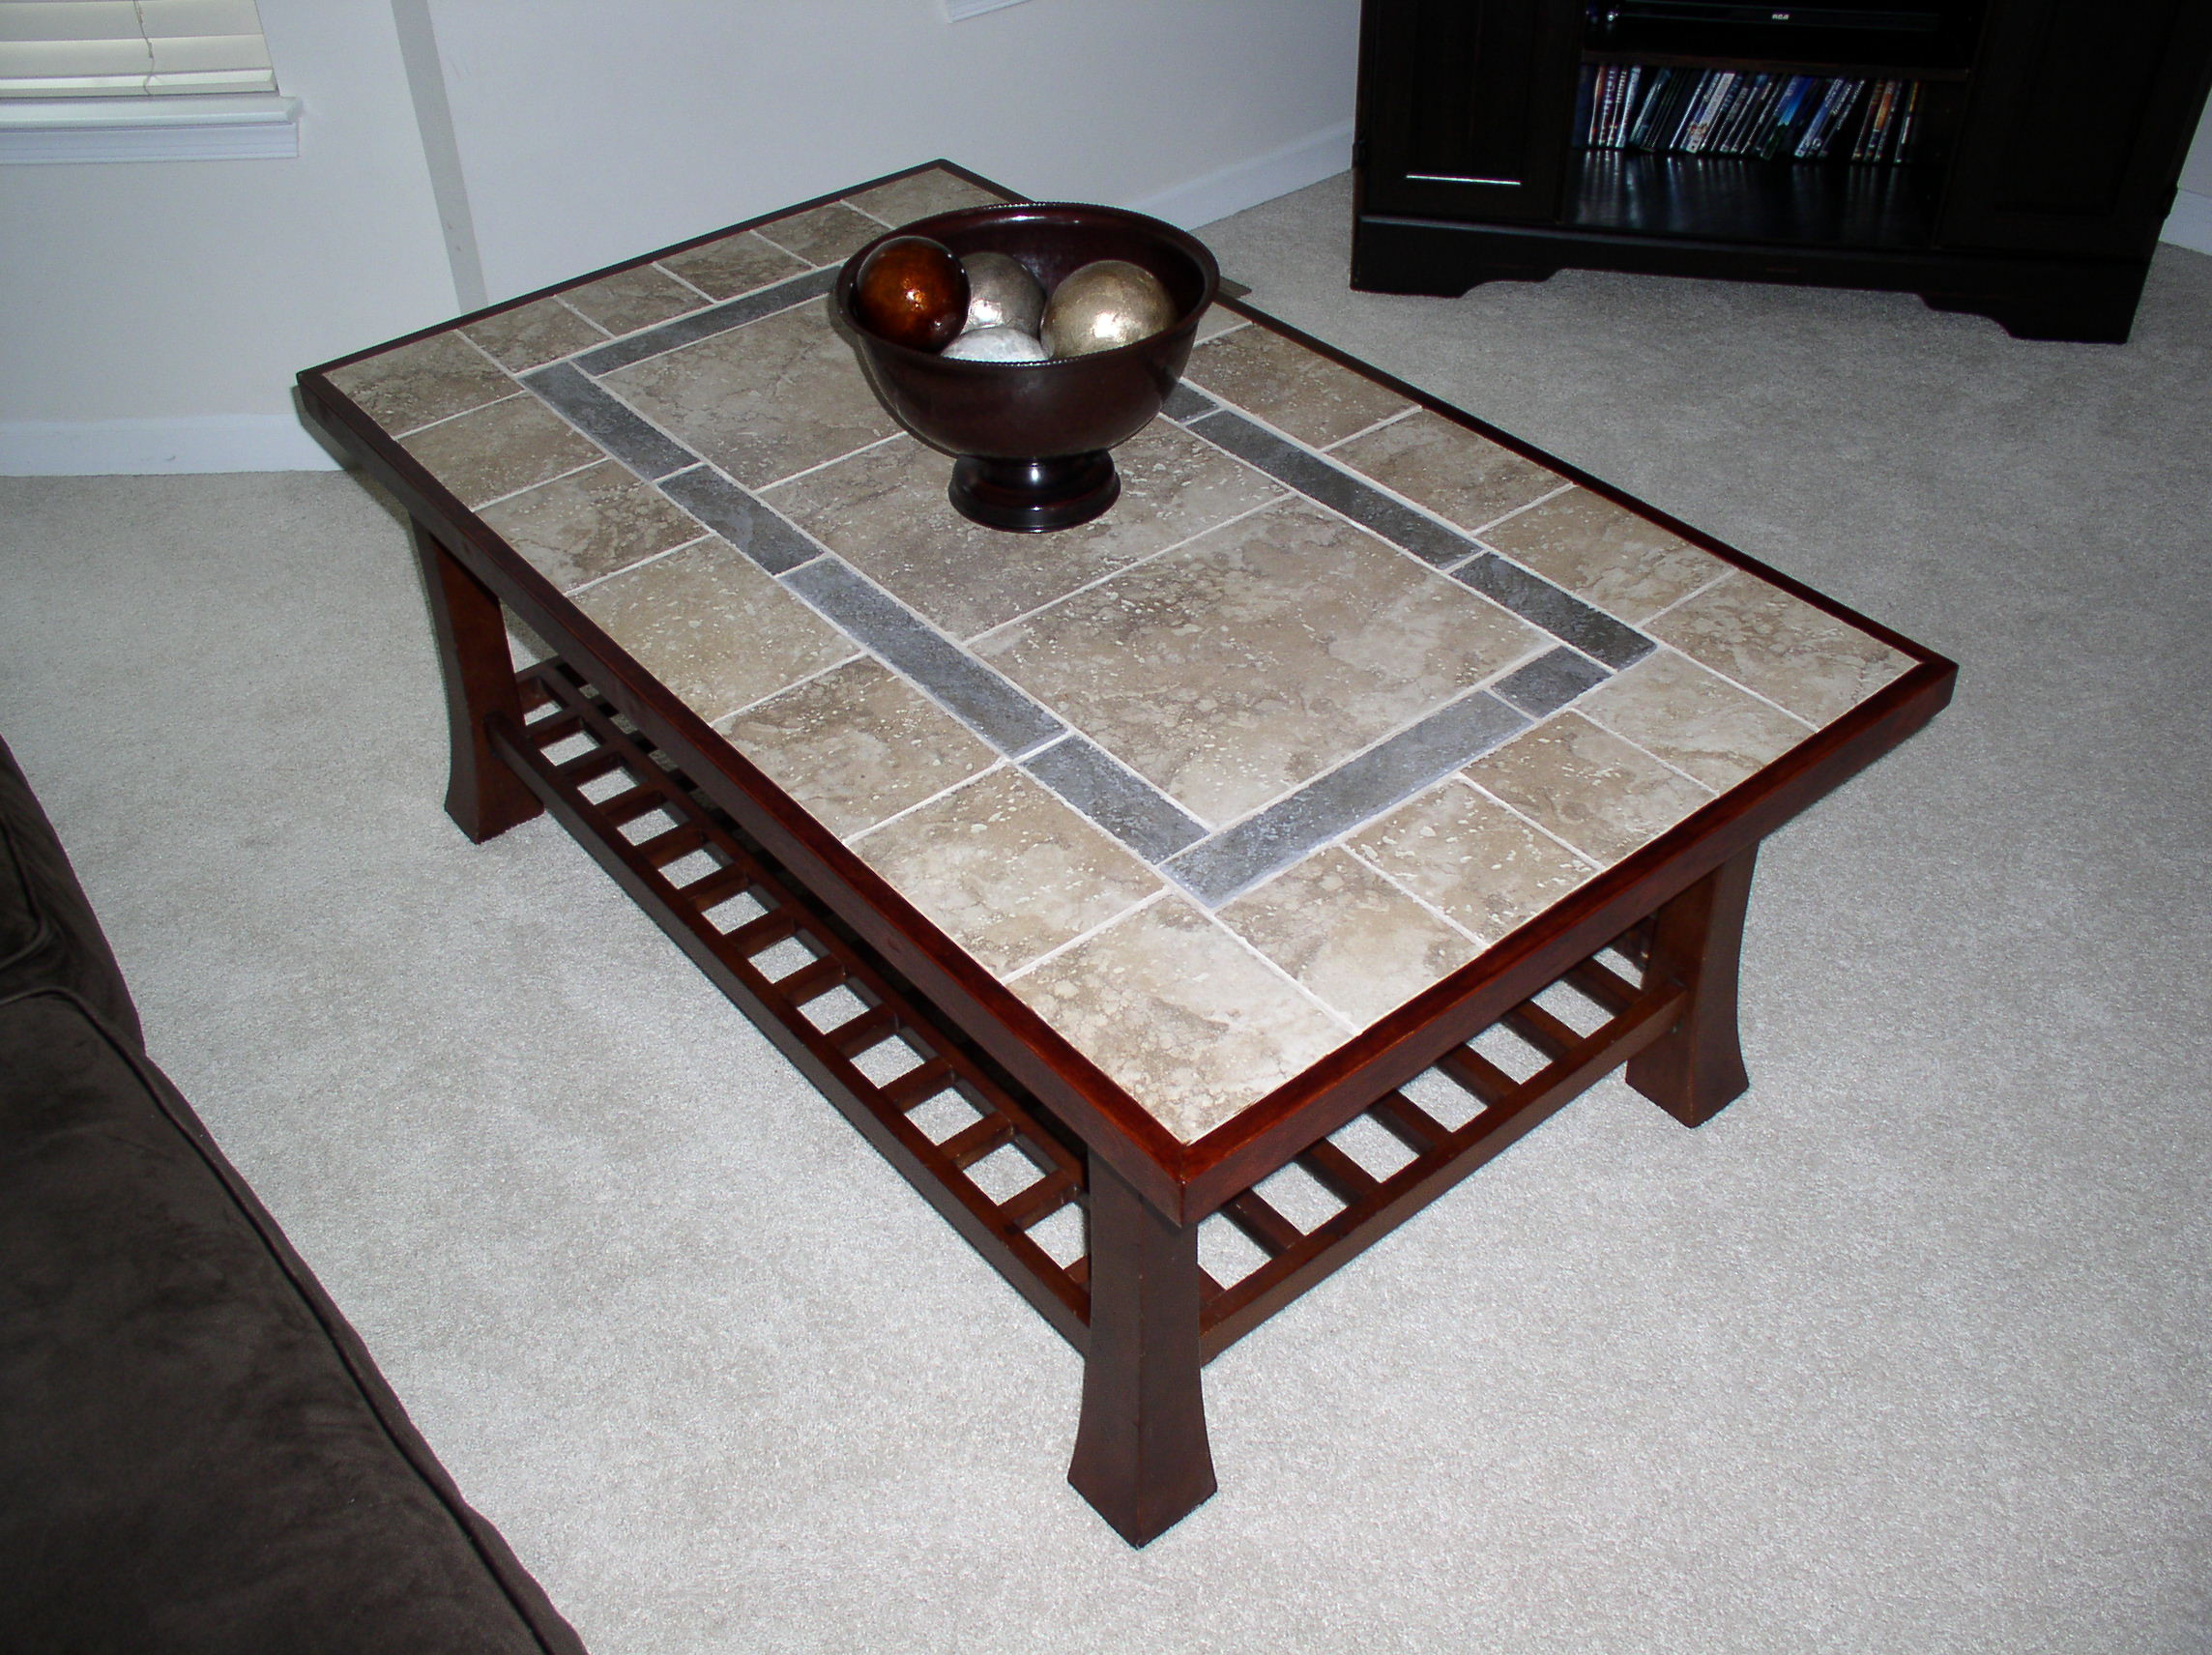 Best ideas about Refinishing Coffee Table Ideas . Save or Pin Refinishing Coffee Table Ideas writehookstudio Now.